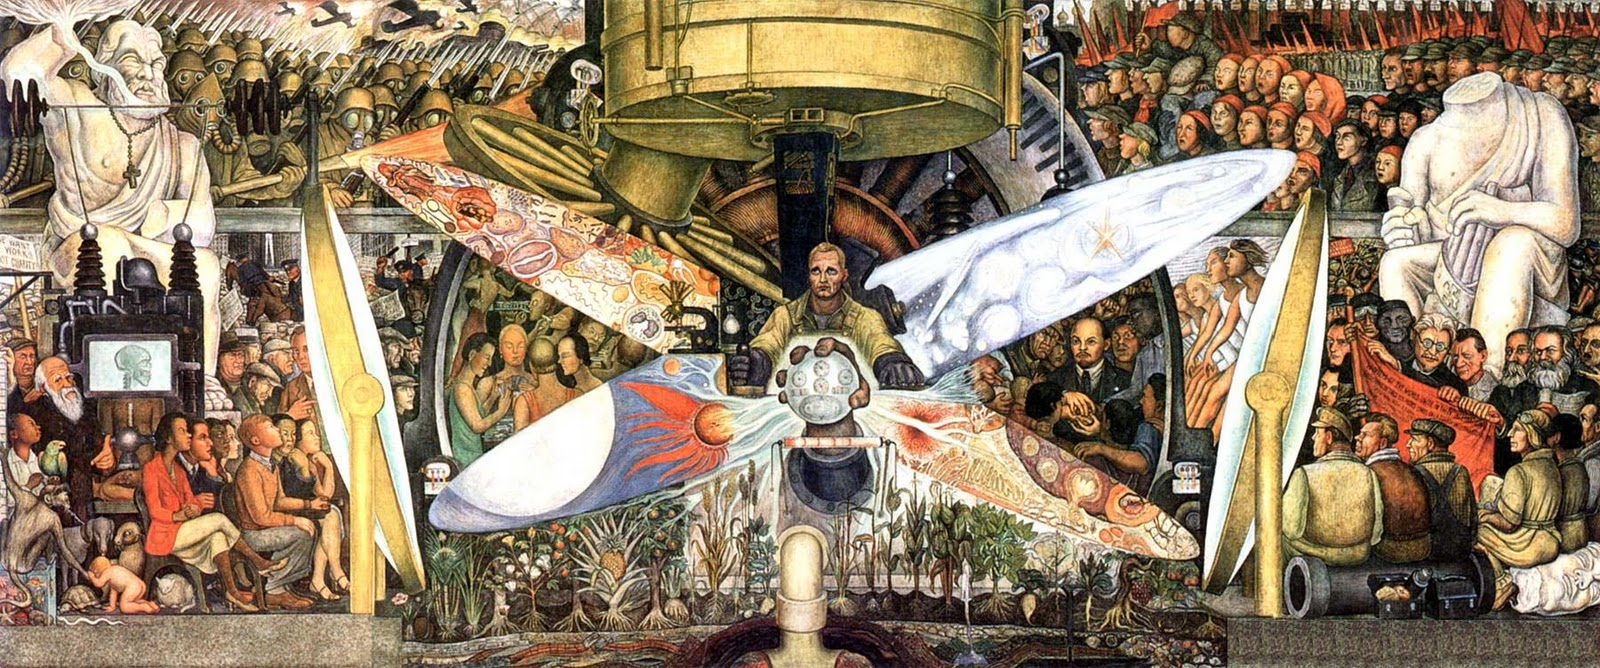 diego-rivera-man-at-the-crossroads